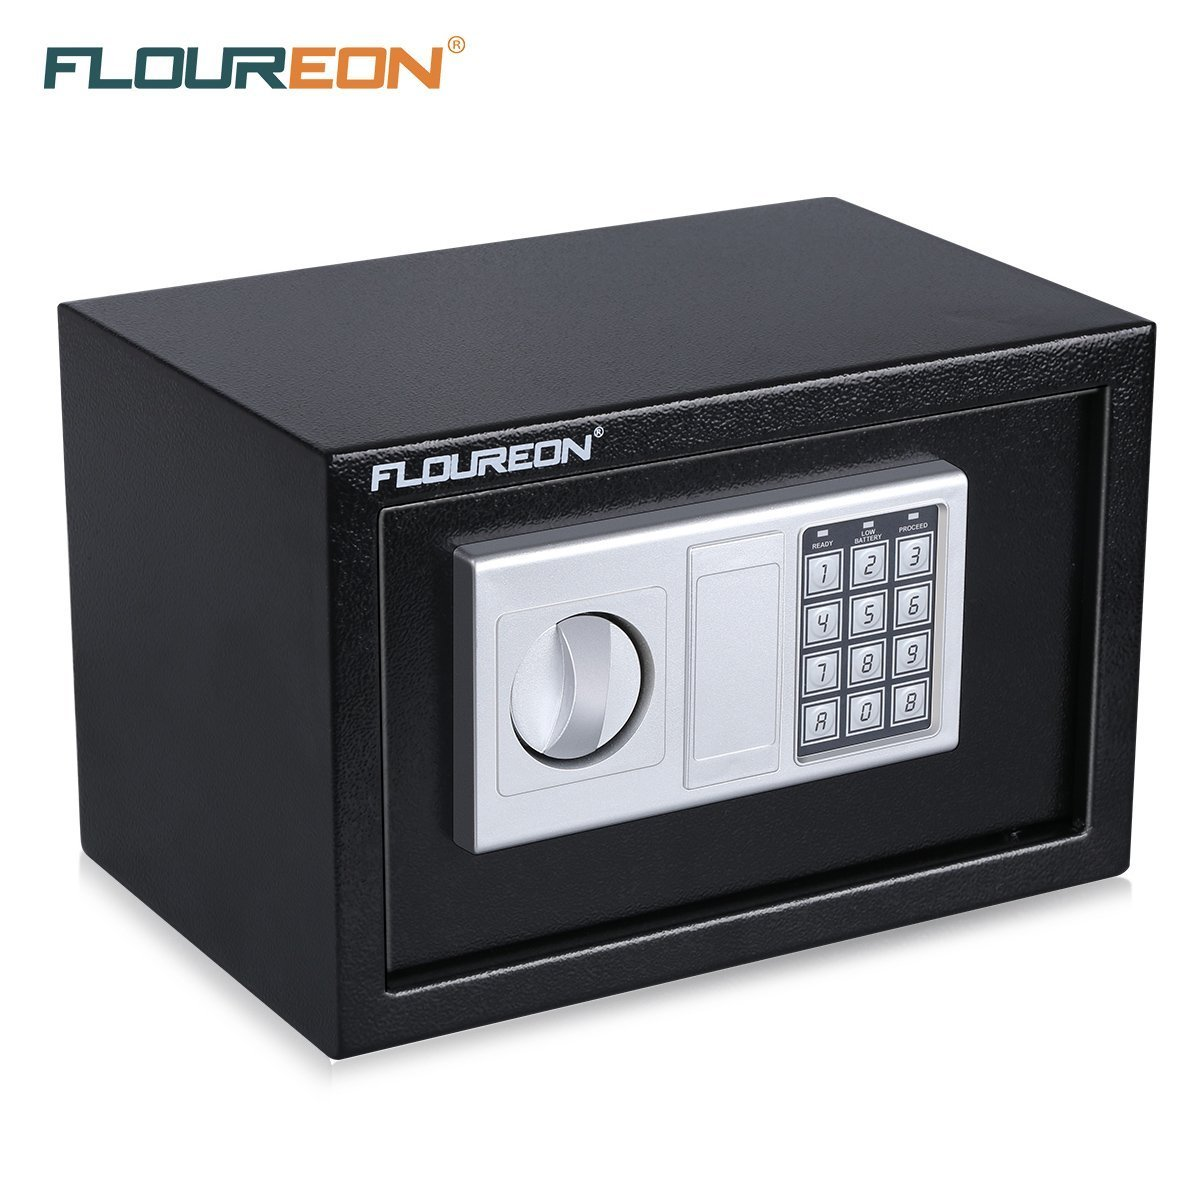 FLOUREON Security Safe Lock Box Solid Steel Security Safe Box Keypad Lock Electronic Digital for Home /Office /Hotel Business /Jewelry Gun Cash Storage(Model 3)